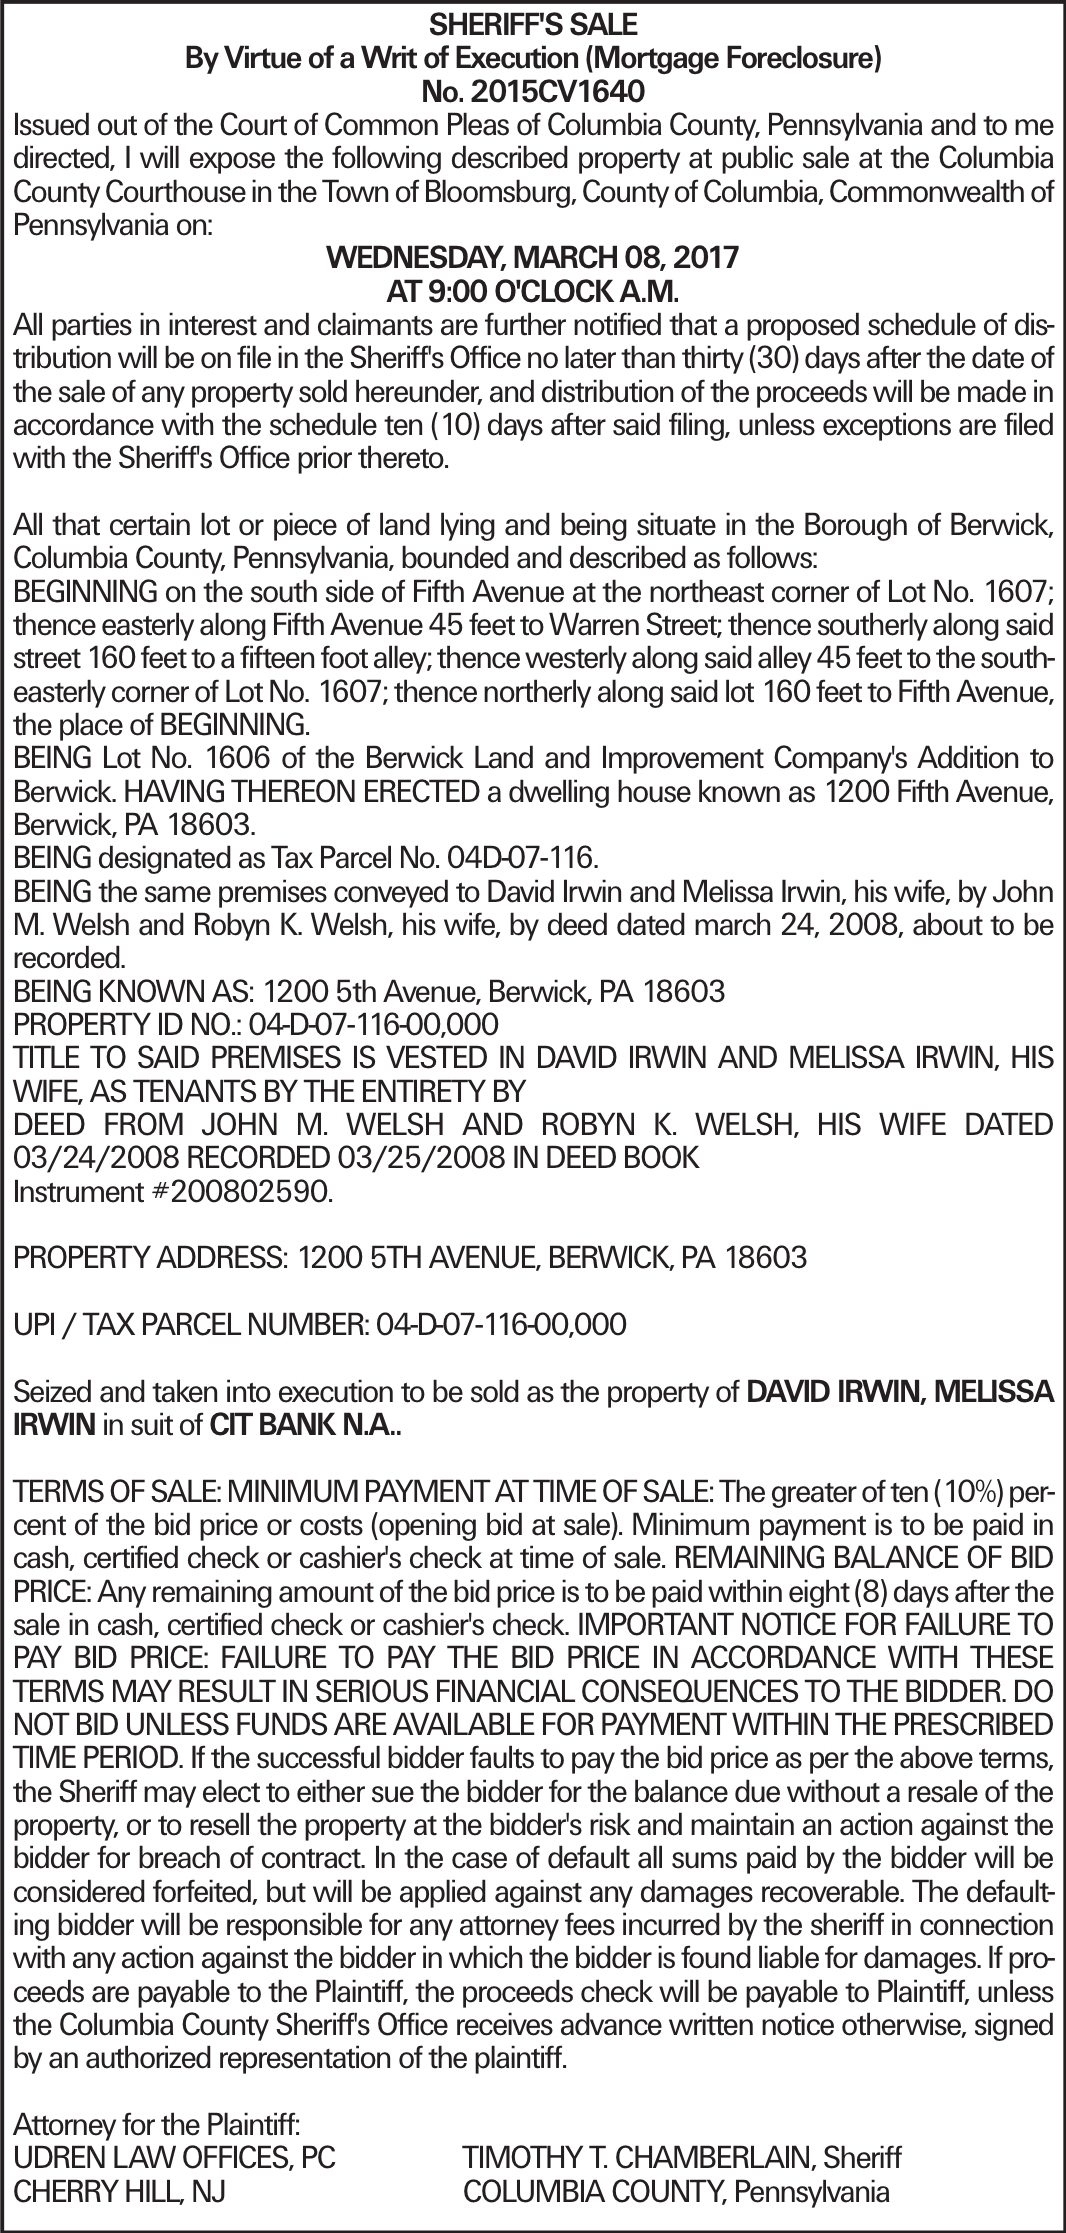 SHERIFF'S SALE By Virtue of a Writ of Execution (Mortgage Foreclosure) No. 2015CV1640 Issued out of the Court of Common Pleas of Columbia County, Pennsylvania and to me directed, I will expose the following described property at public sale at the Columbia County Courthouse in the Town of Bloomsburg, County of Columbia, Commonwealth of Pennsylvania on: WEDNESDAY, MARCH 08, 2017 AT 9:00 O'CLOCK A.M. All parties in interest and claimants are further notified that a proposed schedule of distribution will be on file in the Sheriff's Office no later than thirty (30) days after the date of the sale of any property sold hereunder, and distribution of the proceeds will be made in accordance with the schedule ten (10) days after said filing, unless exceptions are filed with the Sheriff's Office prior thereto. All that certain lot or piece of land lying and being situate in the Borough of Berwick, Columbia County, Pennsylvania, bounded and described as follows: BEGINNING on the south side of Fifth Avenue at the northeast corner of Lot No. 1607; thence easterly along Fifth Avenue 45 feet to Warren Street; thence southerly along said street 160 feet to a fifteen foot alley; thence westerly along said alley 45 feet to the southeasterly corner of Lot No. 1607; thence northerly along said lot 160 feet to Fifth Avenue, the place of BEGINNING. BEING Lot No. 1606 of the Berwick Land and Improvement Company's Addition to Berwick. HAVING THEREON ERECTED a dwelling house known as 1200 Fifth Avenue, Berwick, PA 18603. BEING designated as Tax Parcel No. 04D-07-116. BEING the same premises conveyed to David Irwin and Melissa Irwin, his wife, by John M. Welsh and Robyn K. Welsh, his wife, by deed dated march 24, 2008, about to be recorded. BEING KNOWN AS: 1200 5th Avenue, Berwick, PA 18603 PROPERTY ID NO.: 04-D-07-116-00,000 TITLE TO SAID PREMISES IS VESTED IN DAVID IRWIN AND MELISSA IRWIN, HIS WIFE, AS TENANTS BY THE ENTIRETY BY DEED FROM JOHN M. WELSH AND ROBYN K. WELSH, HIS WIFE DATED 03